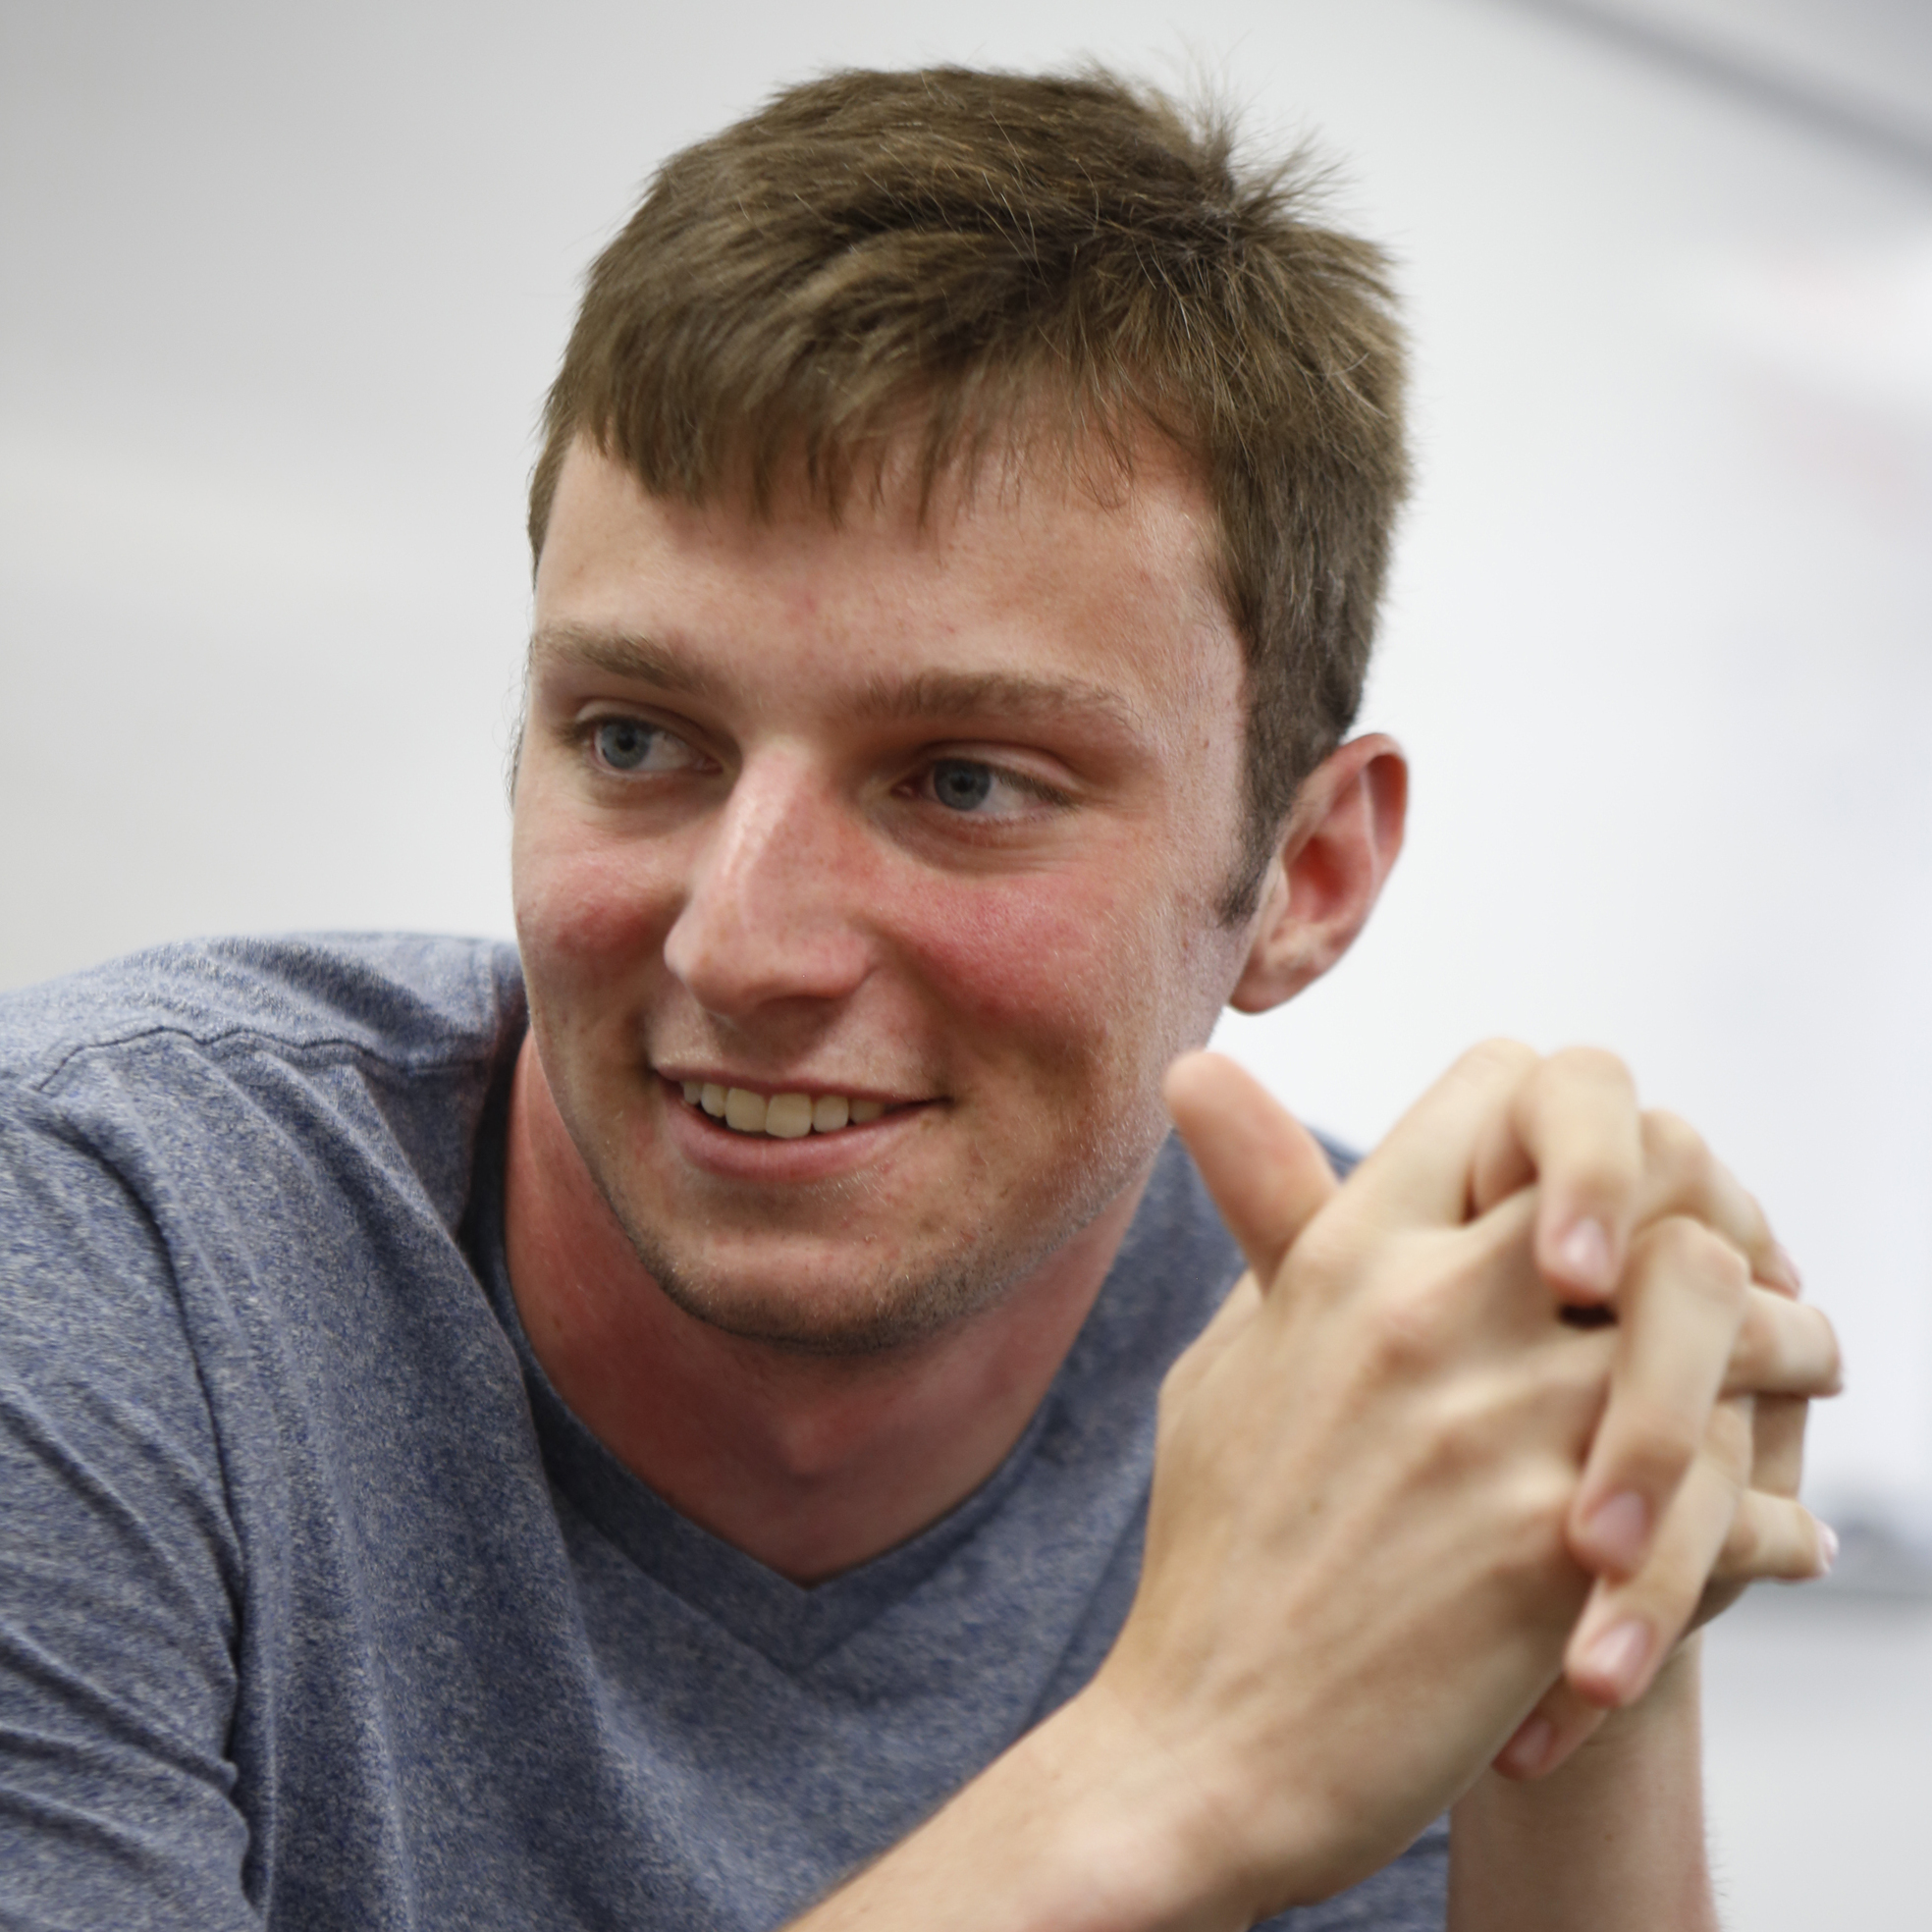 Nick Weadock just graduated from the University of Maryland and helped design the new battery.